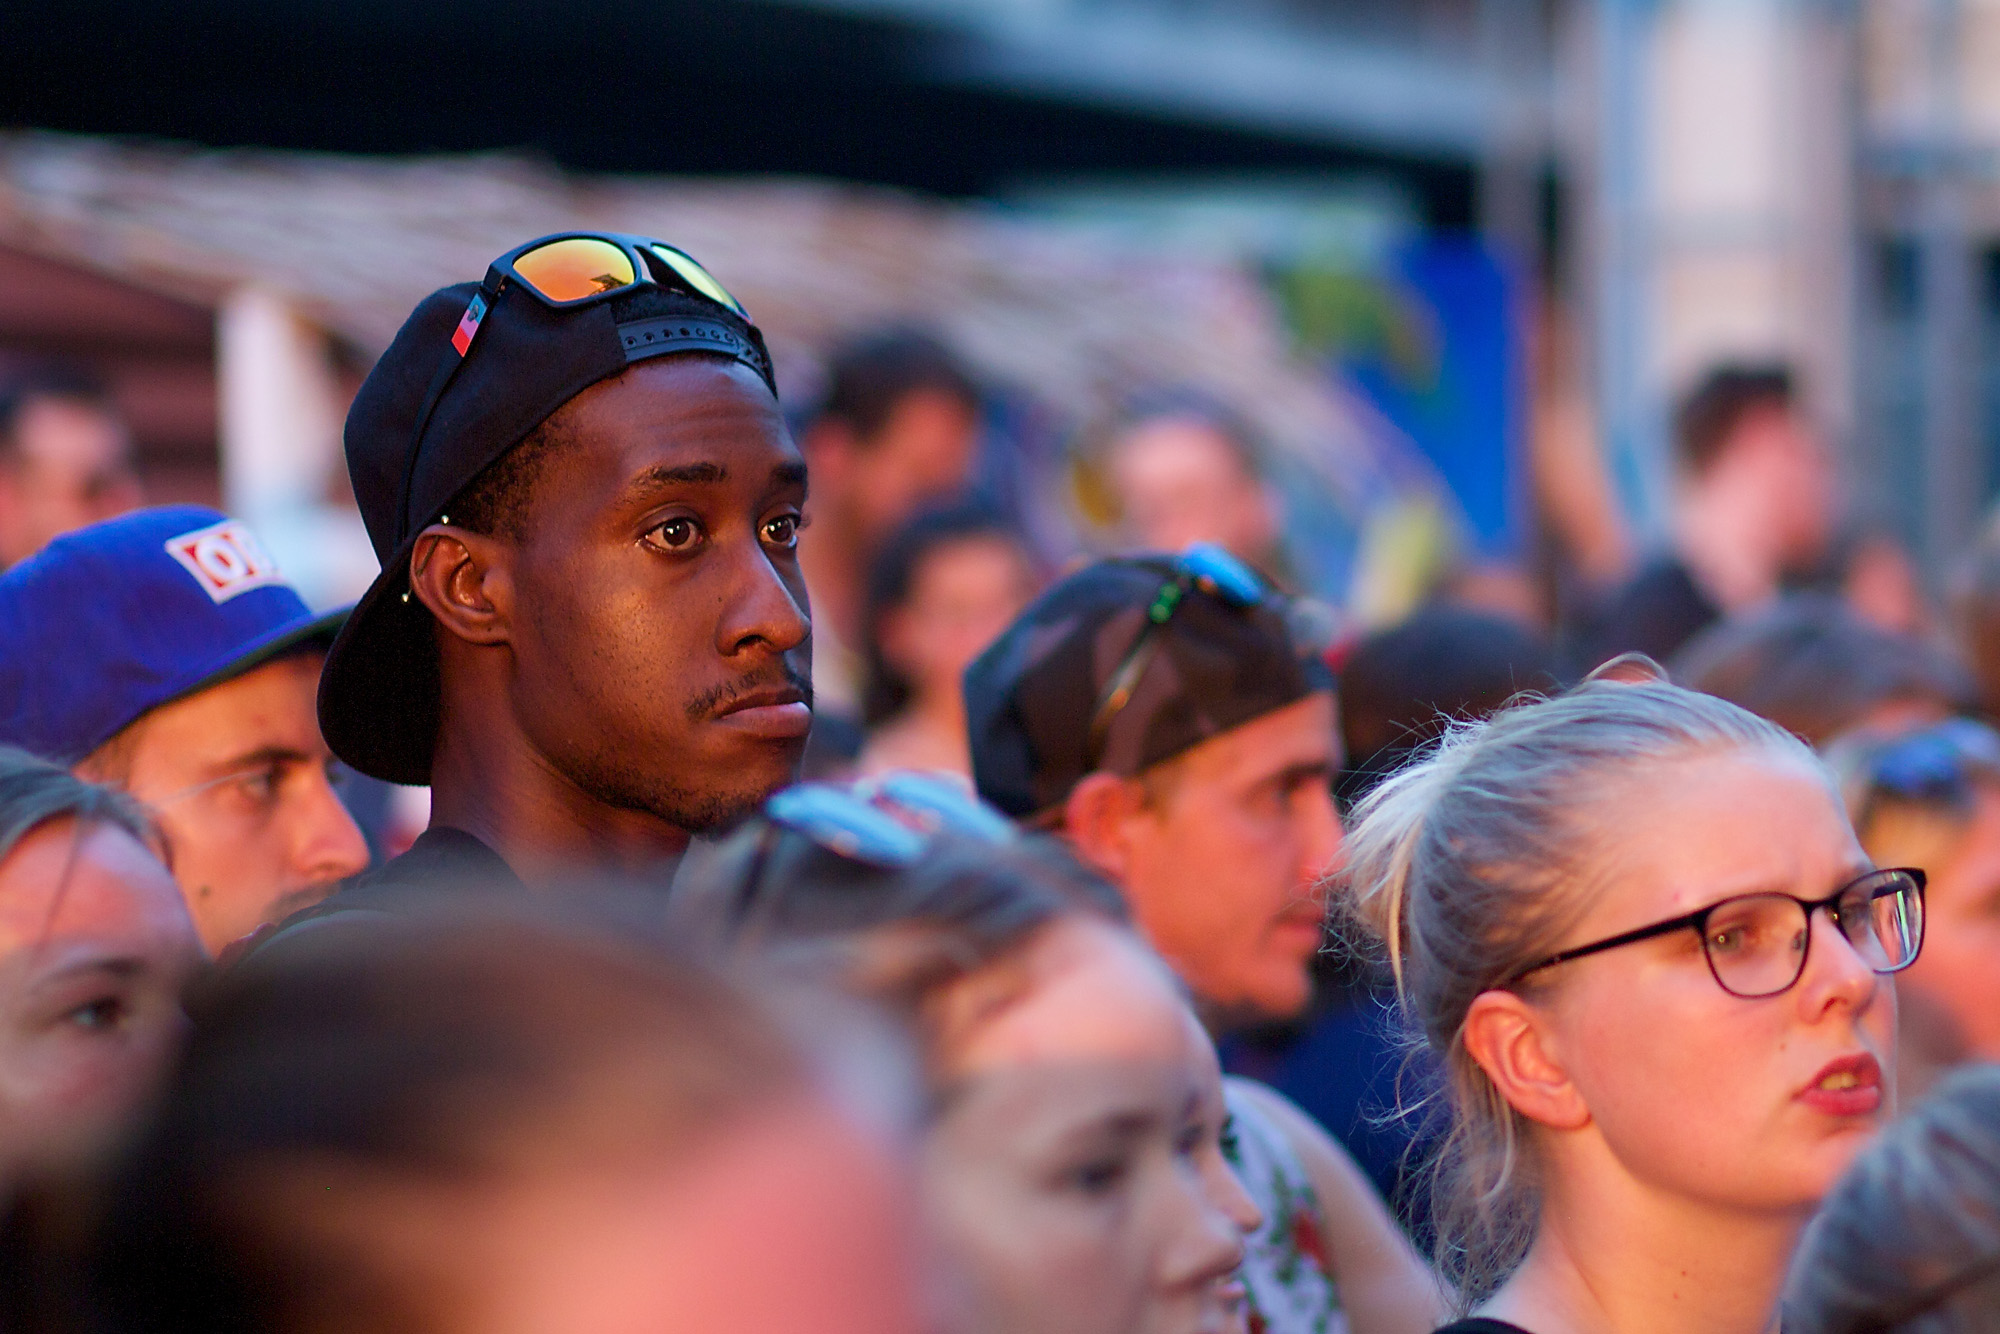 man in crowd, watching anxiously